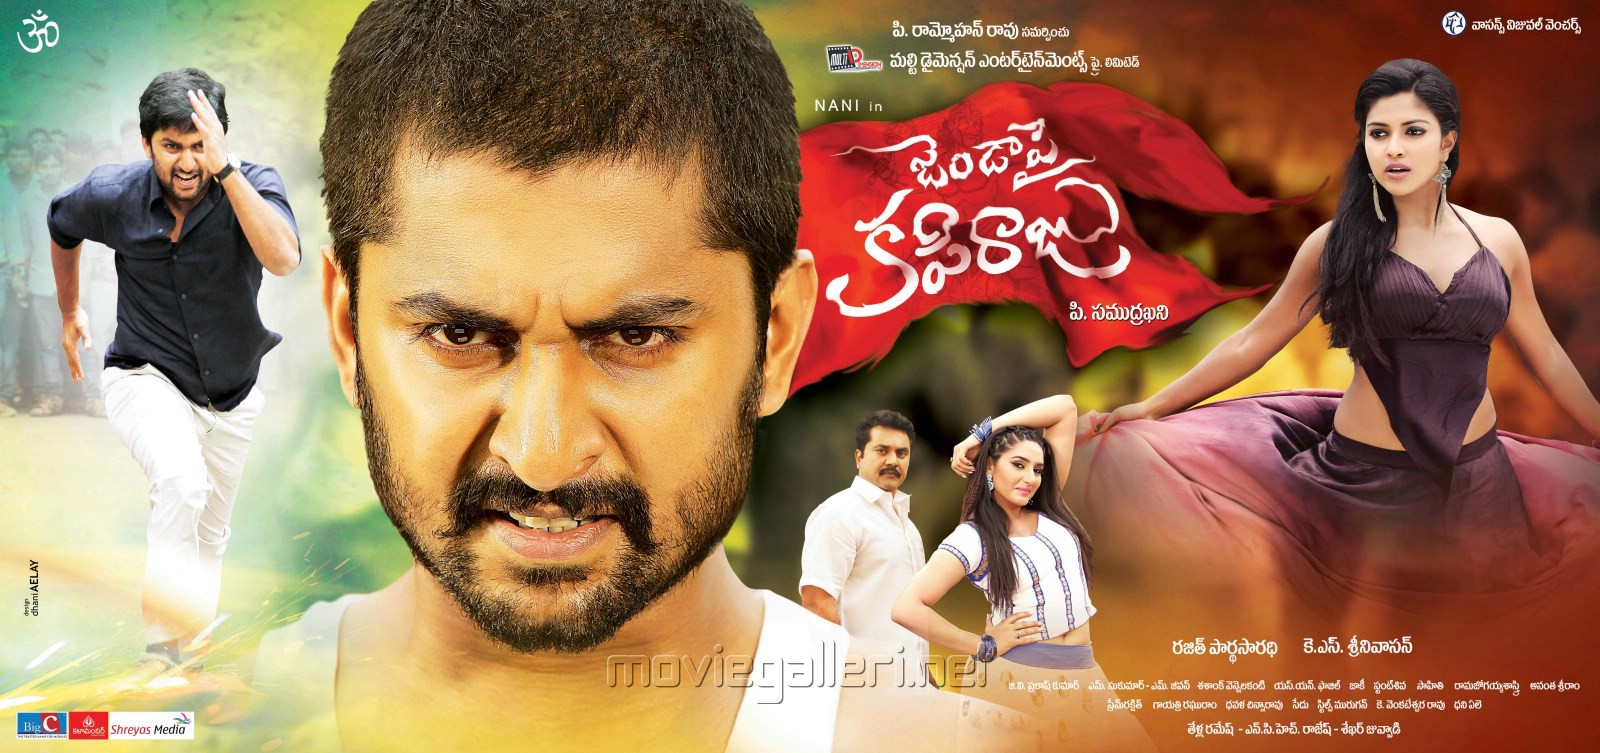 Janda Pai Kapiraju Movie Wallpapers